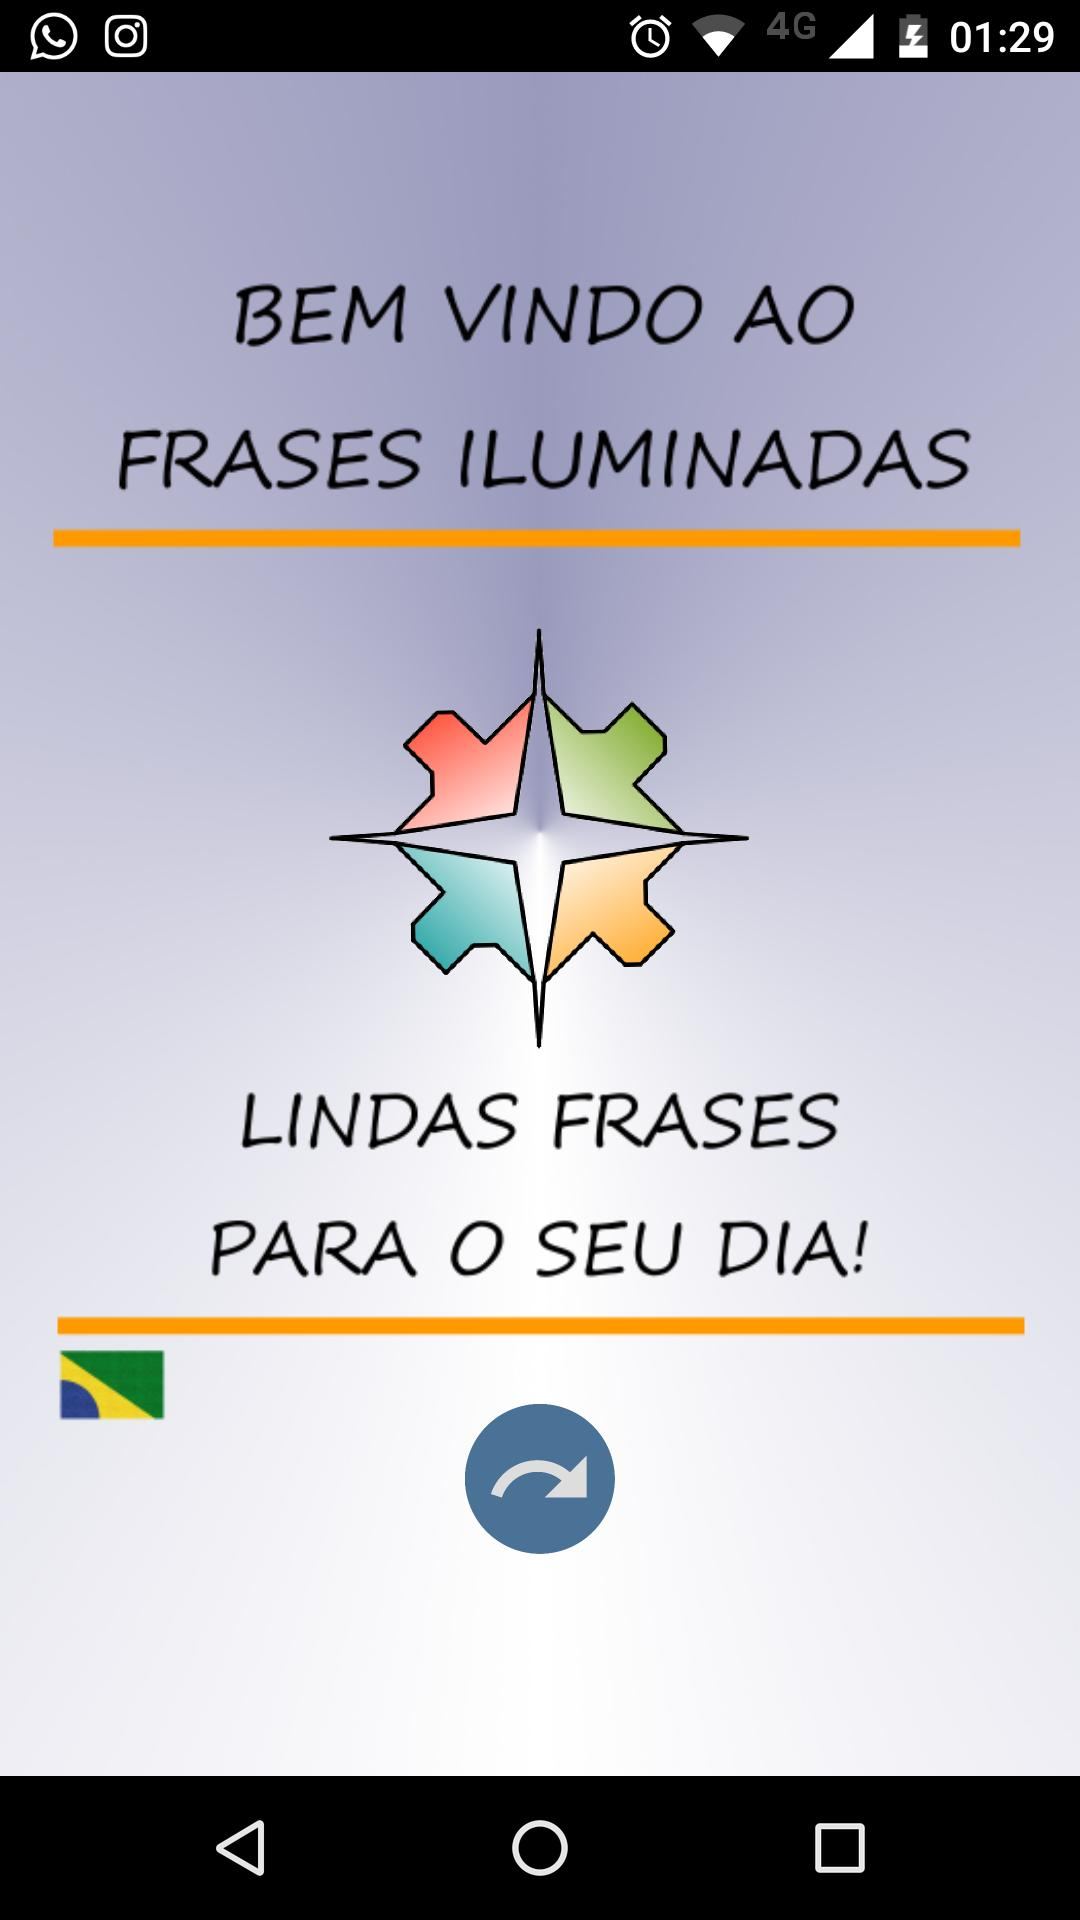 Frases Iluminadas For Android Apk Download